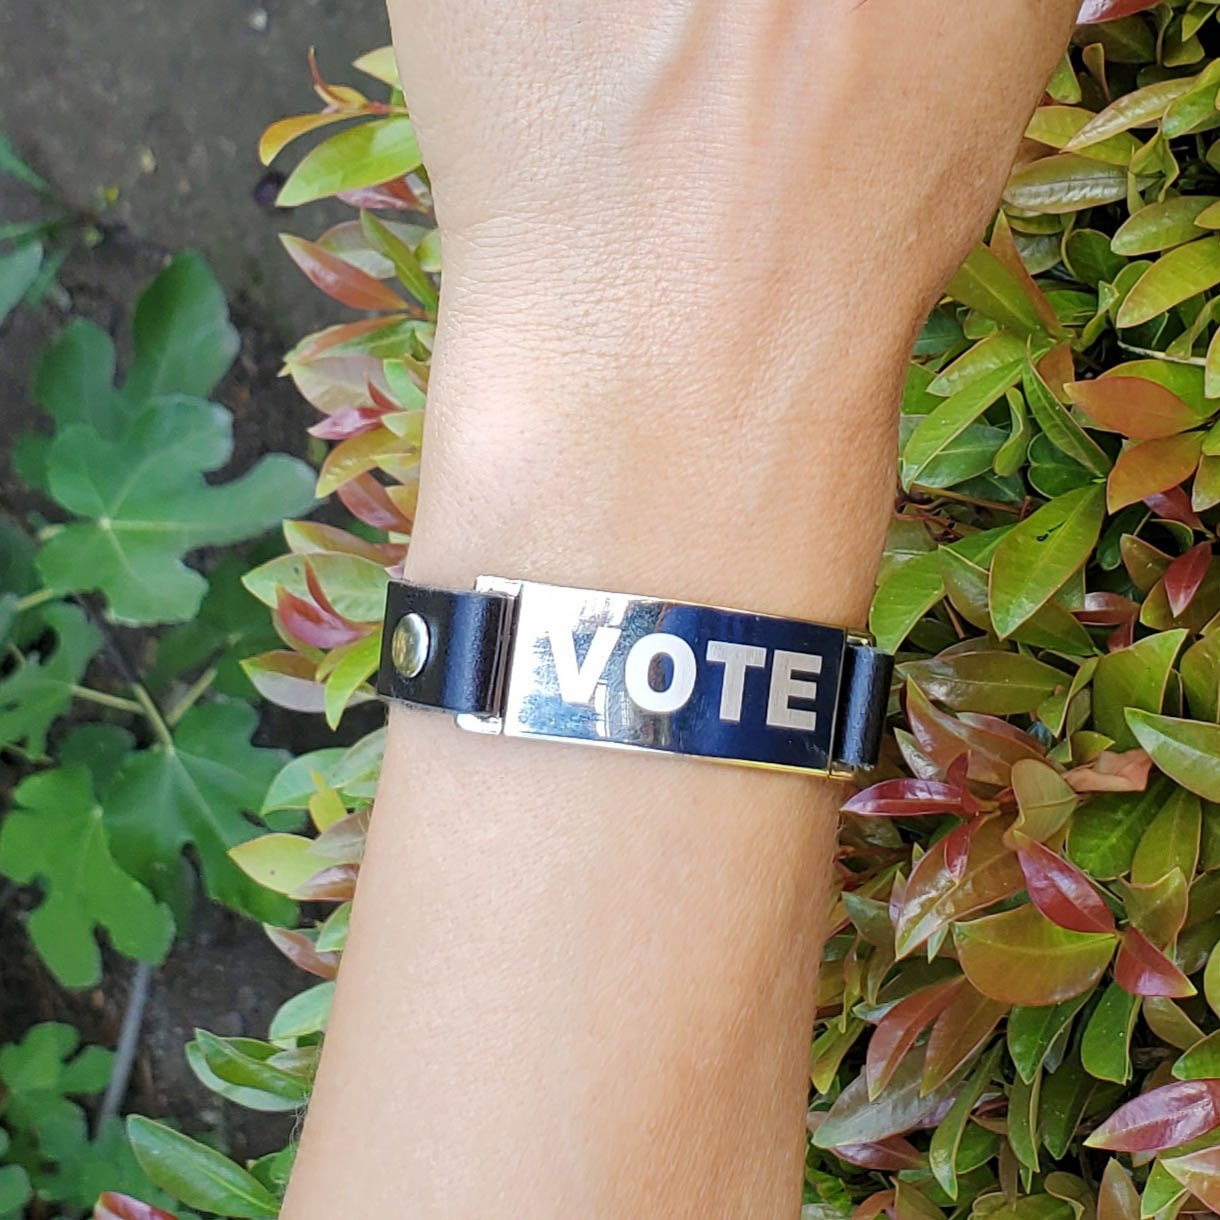 Leather Vote BRACELET - BENY HART - Wearable Art - handmade Luxury Leather Fashion & Accessories